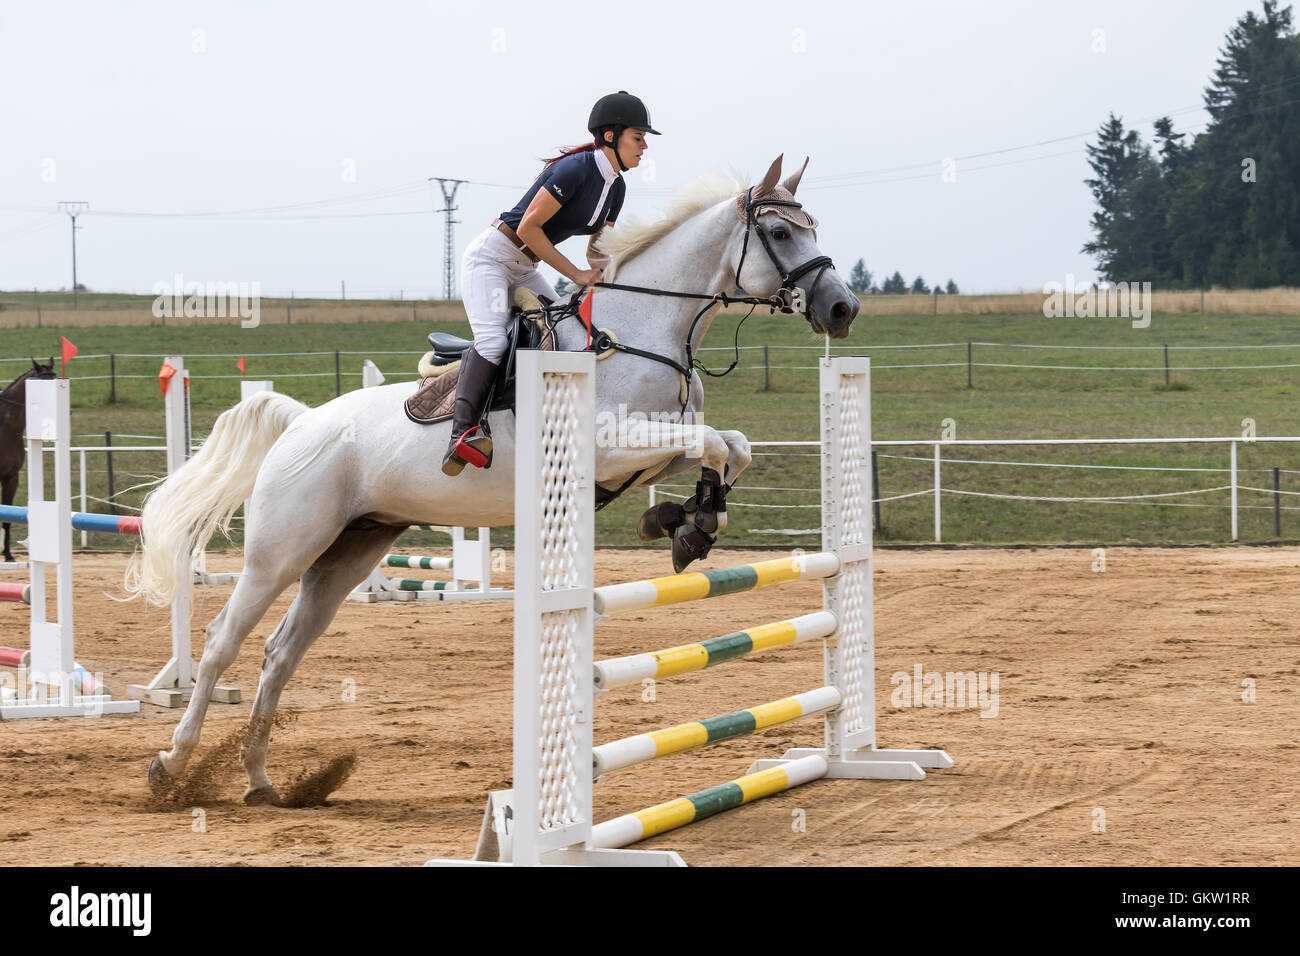 Long Haired Beautiful Horsewoman On A White Horse Is Jumping Stock Photo Alamy